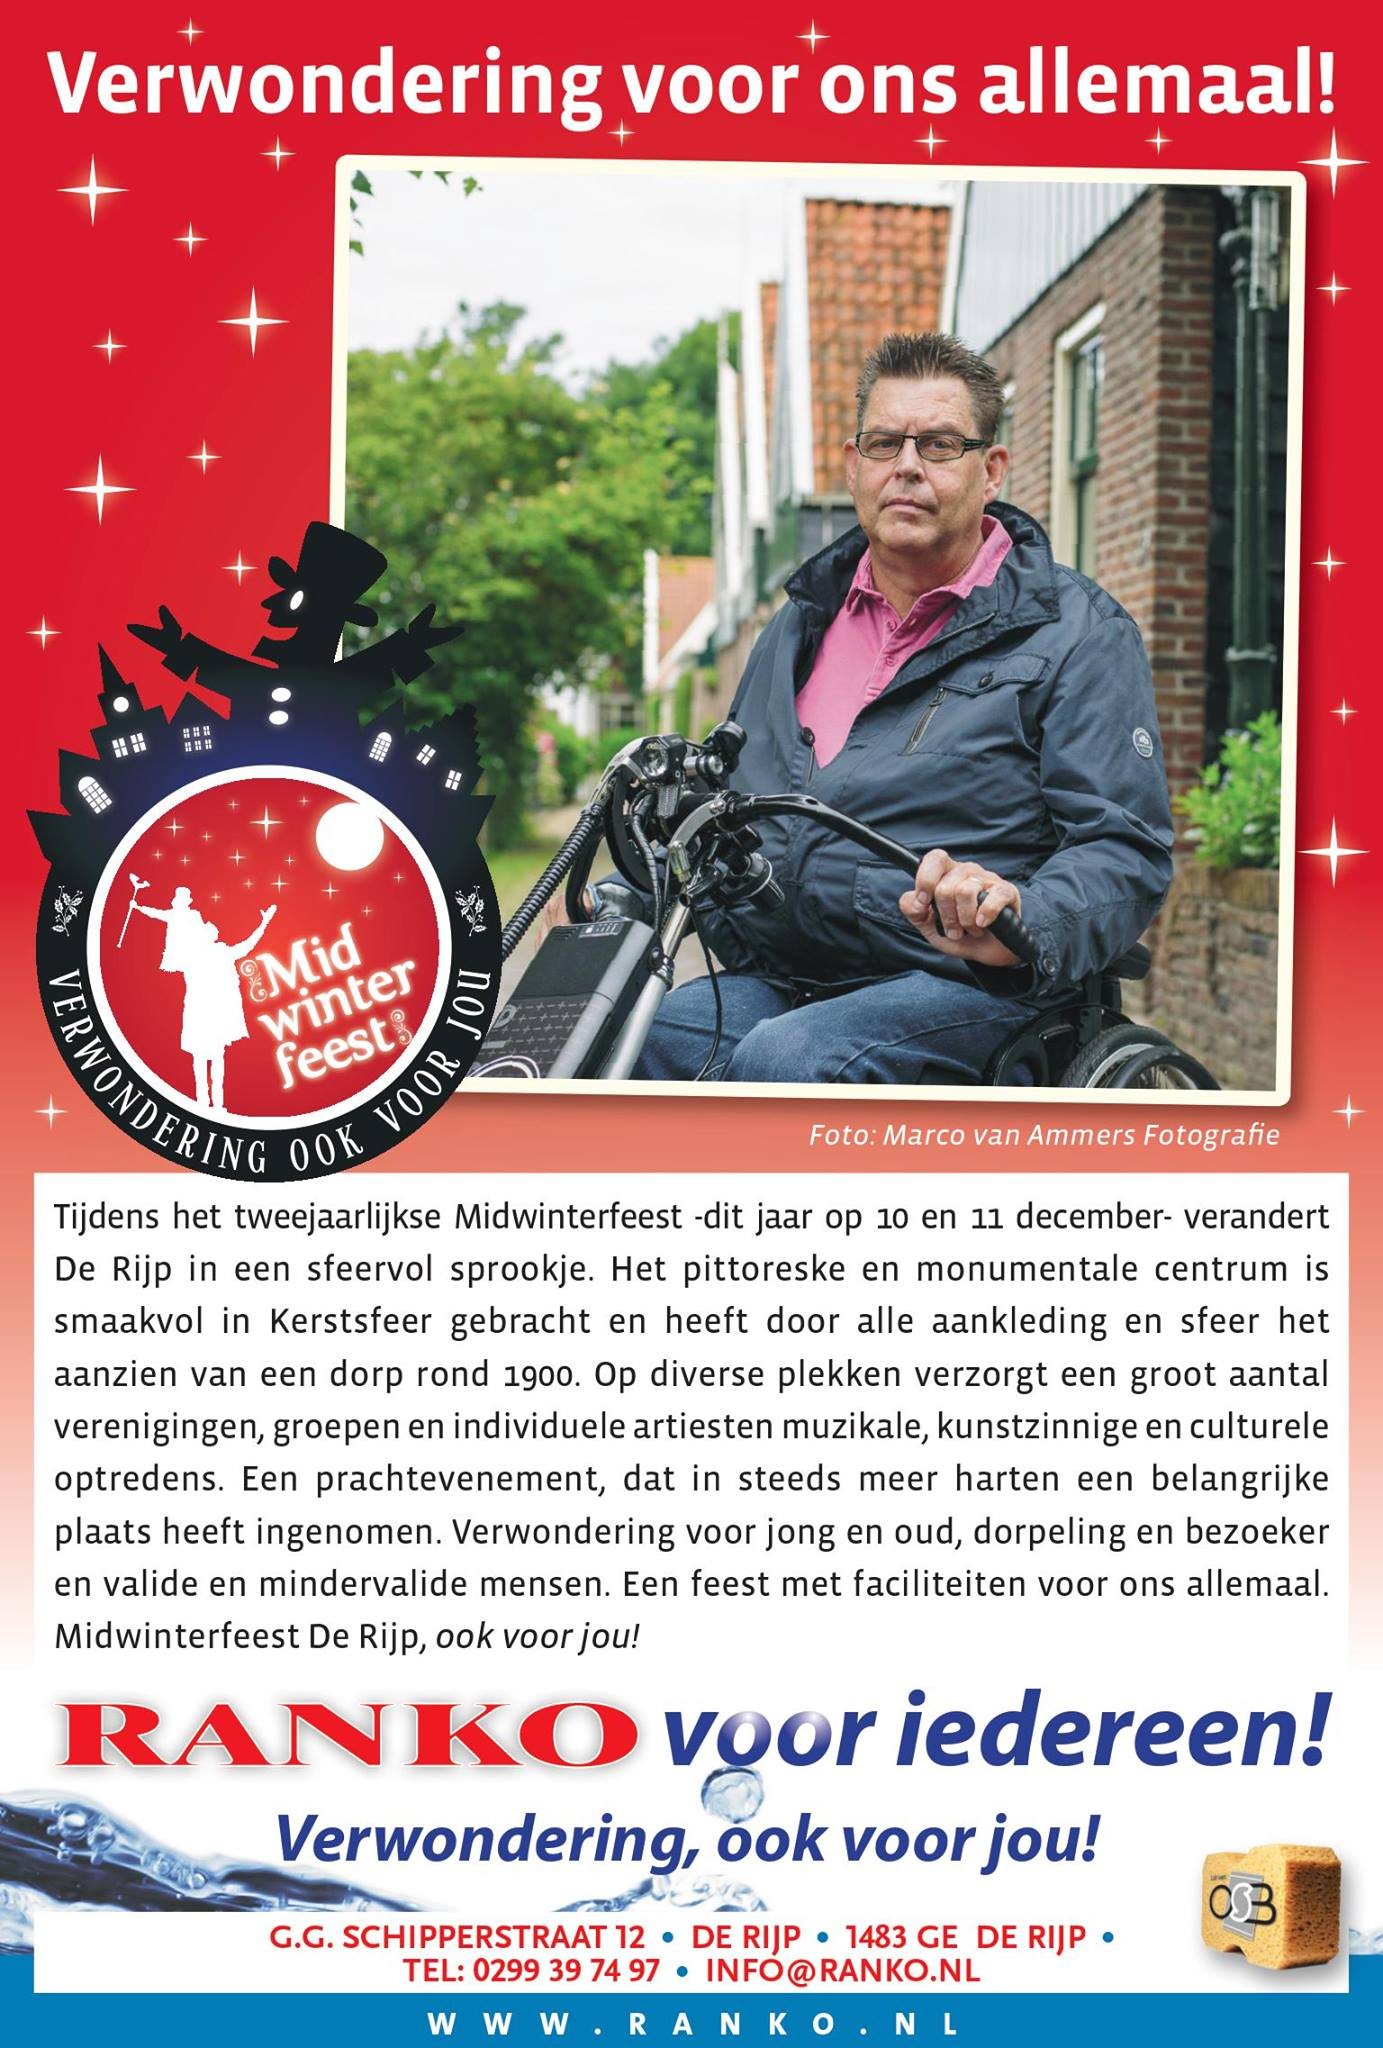 Midwinterfeest 2016 campagne 6